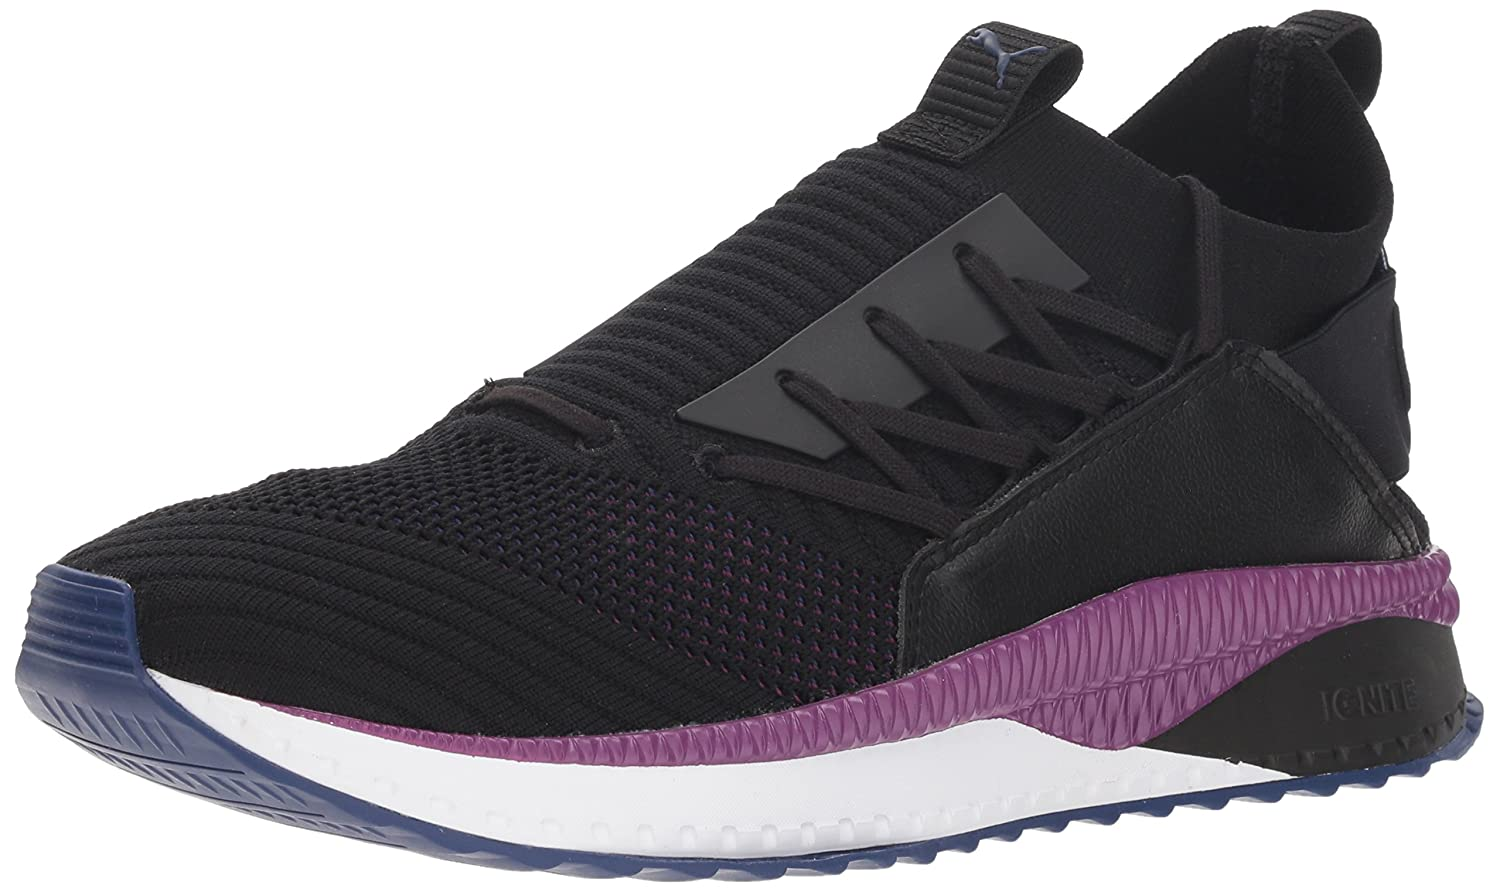 a3789bfcdb7a Puma Men s Tsugi Jun Clrshft Sneaker  Buy Online at Low Prices in India -  Amazon.in